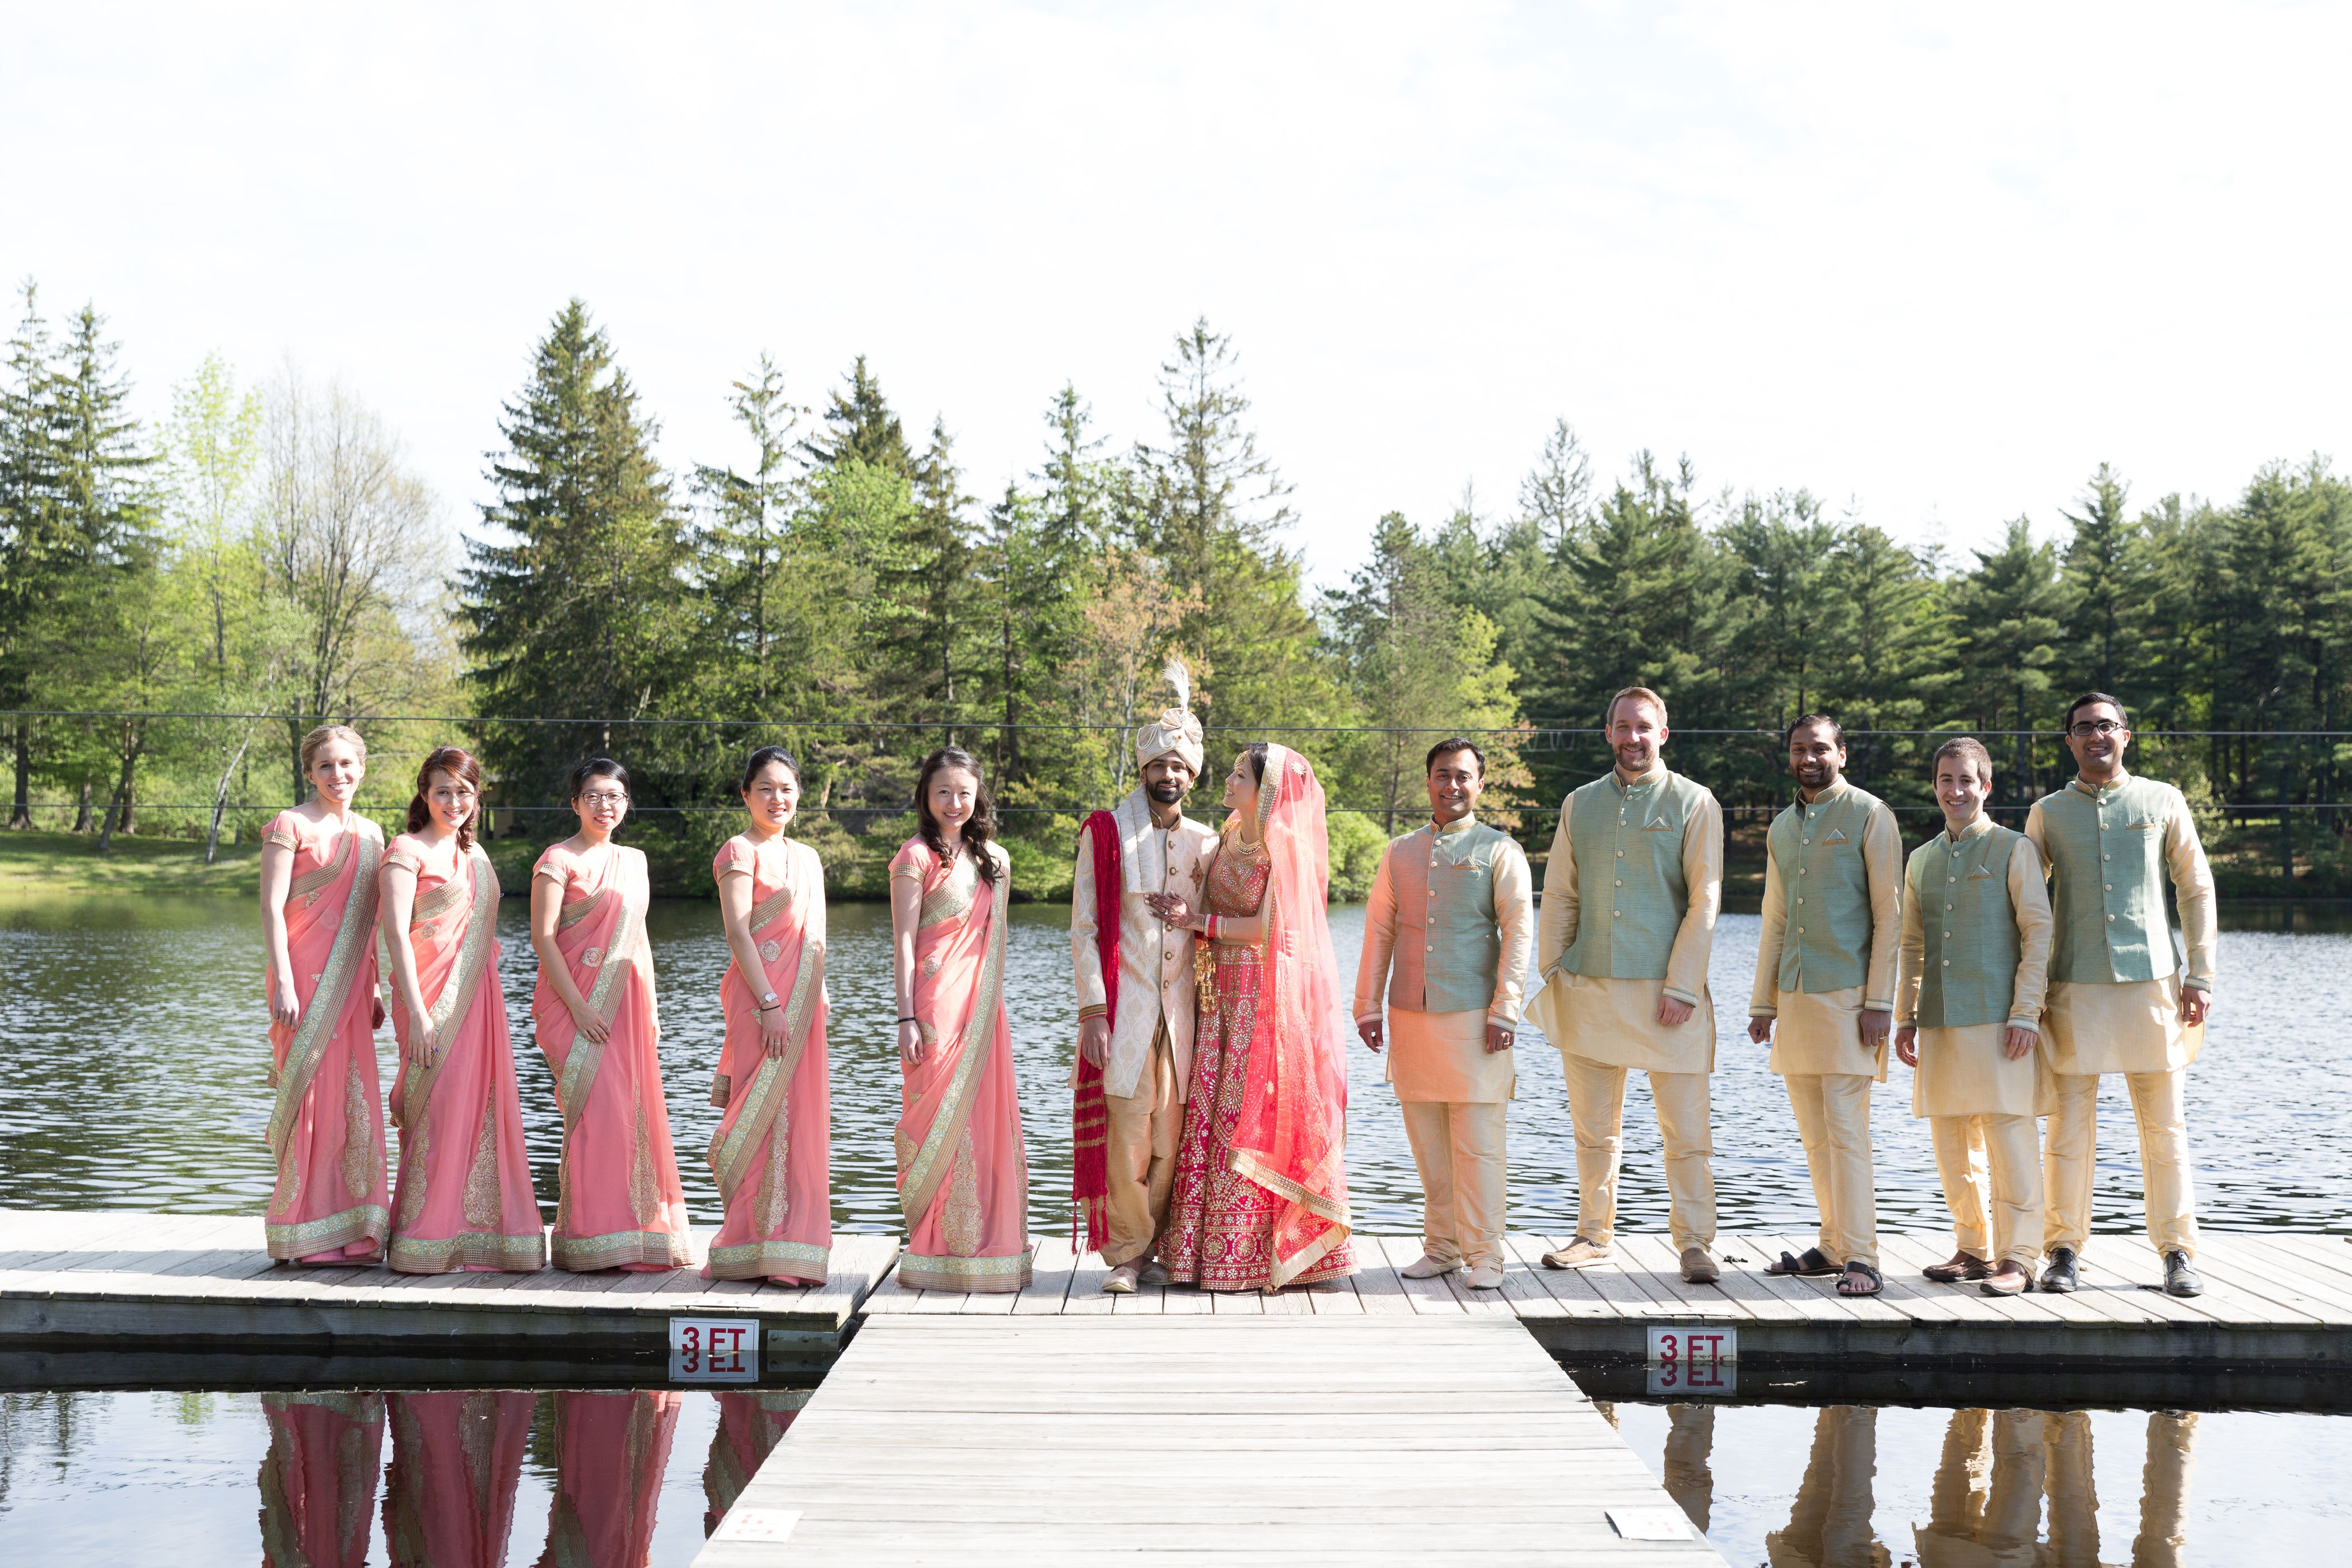 hindu singles in white hall The website includes all news and updates regarding the the and matt johnson as well a our  wednesday october 18th at the elgar rooms at the royal albert hall.